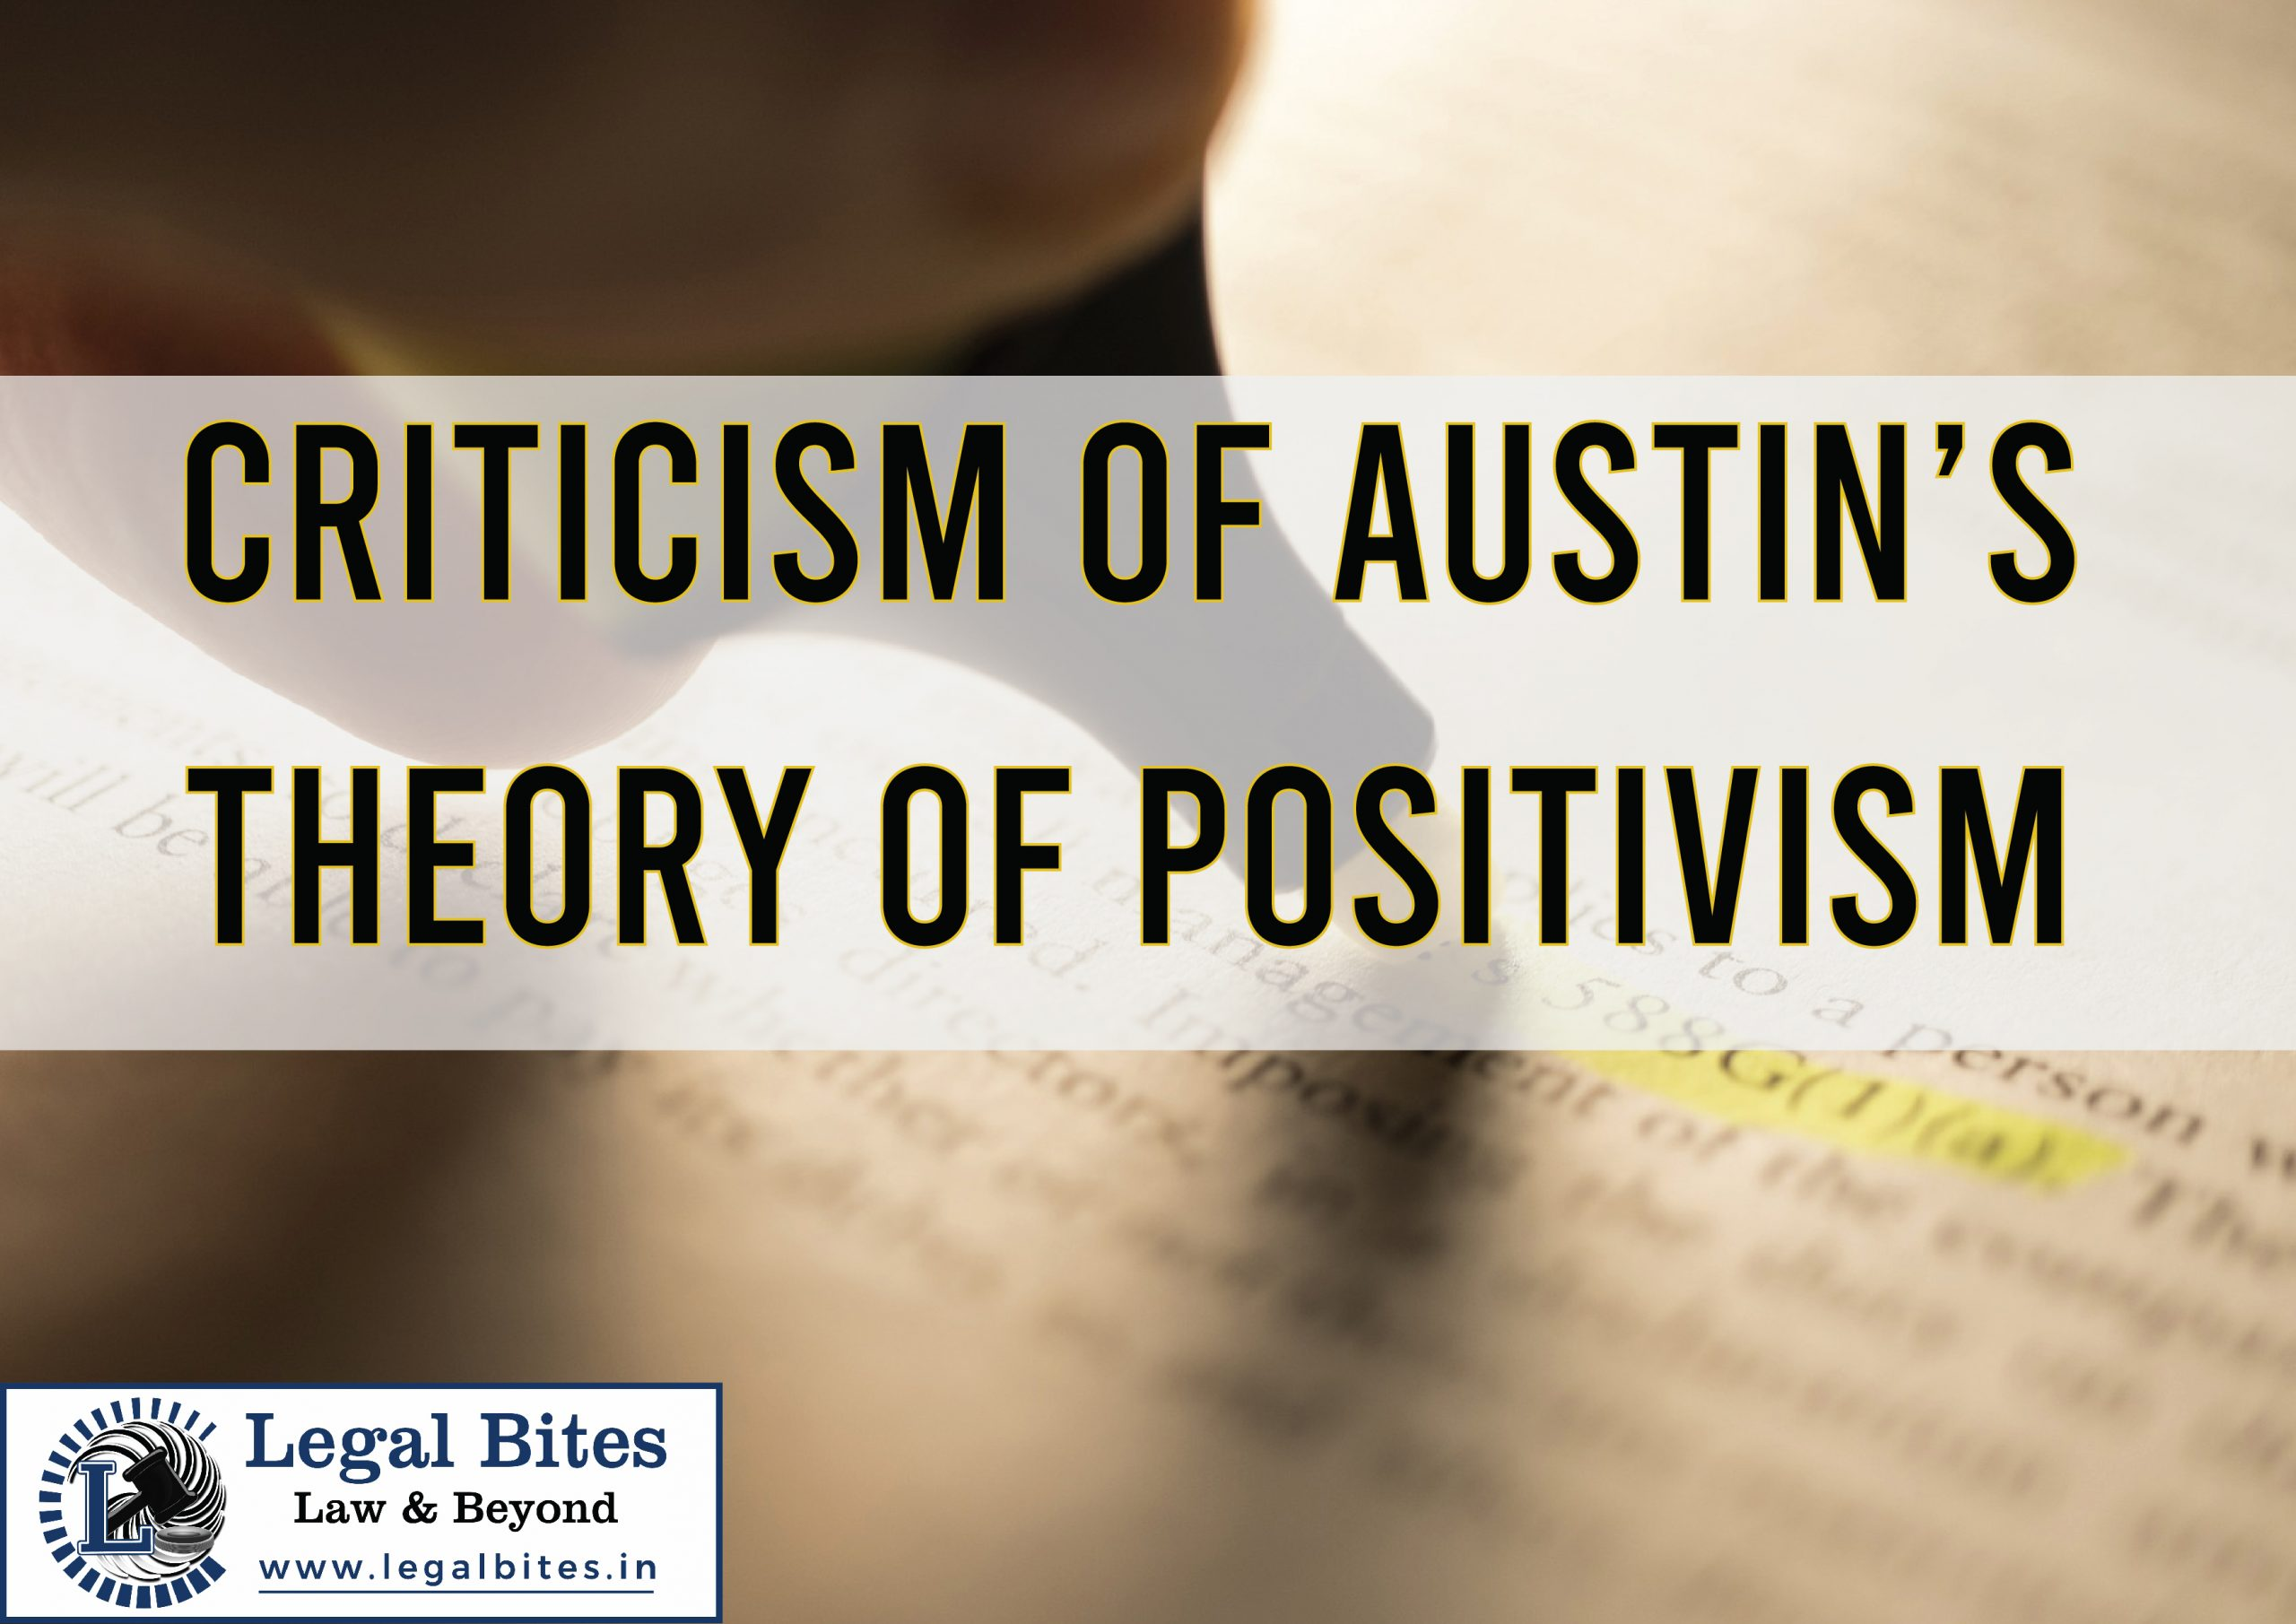 Criticism of Austin's Theory of Positivism